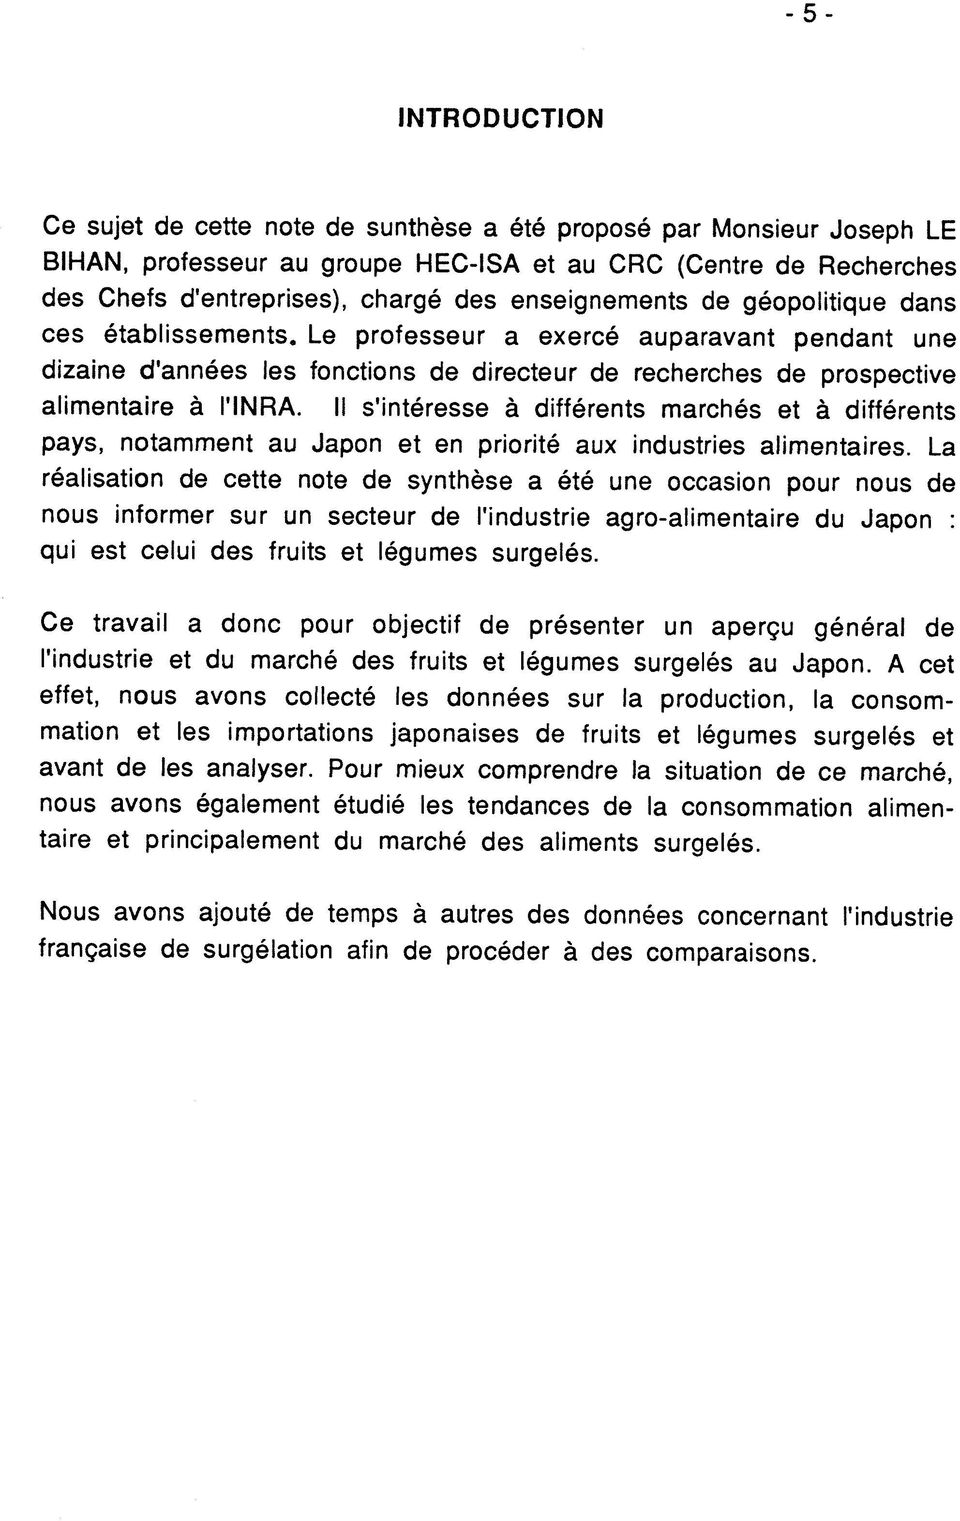 II s'interesse a differents marches et a differents pays, notamment au Japon et en priorite aux industries alimentaires.